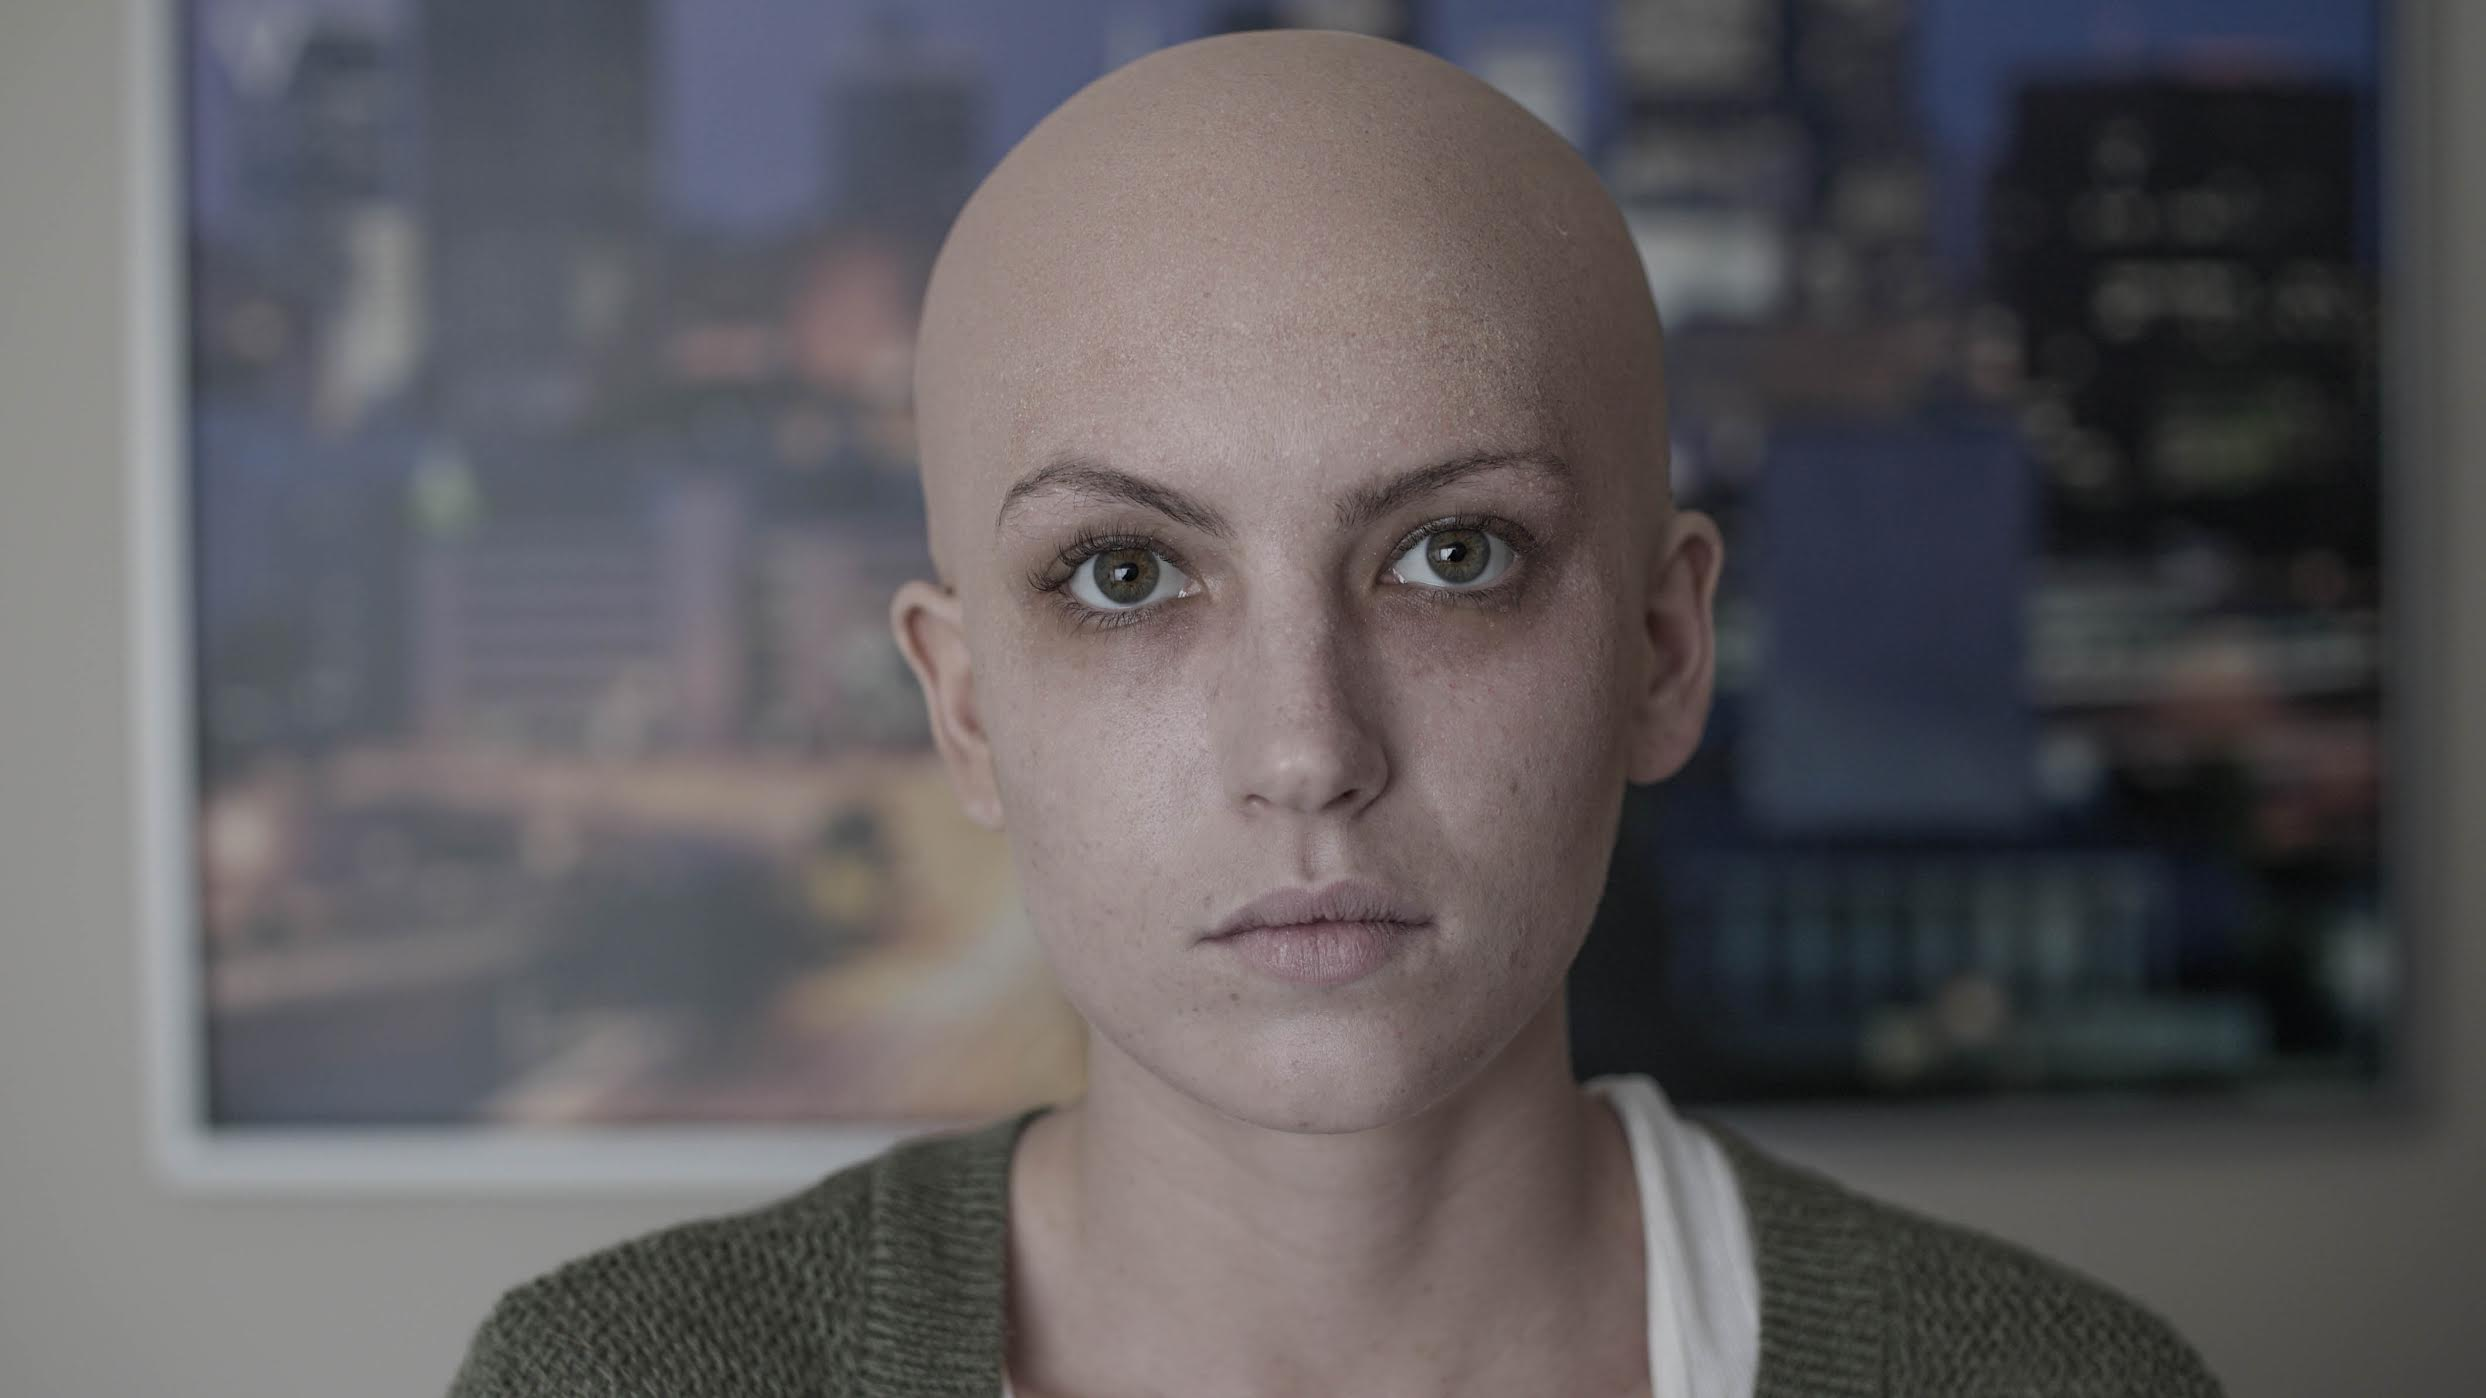 Cancer patient with bald cap